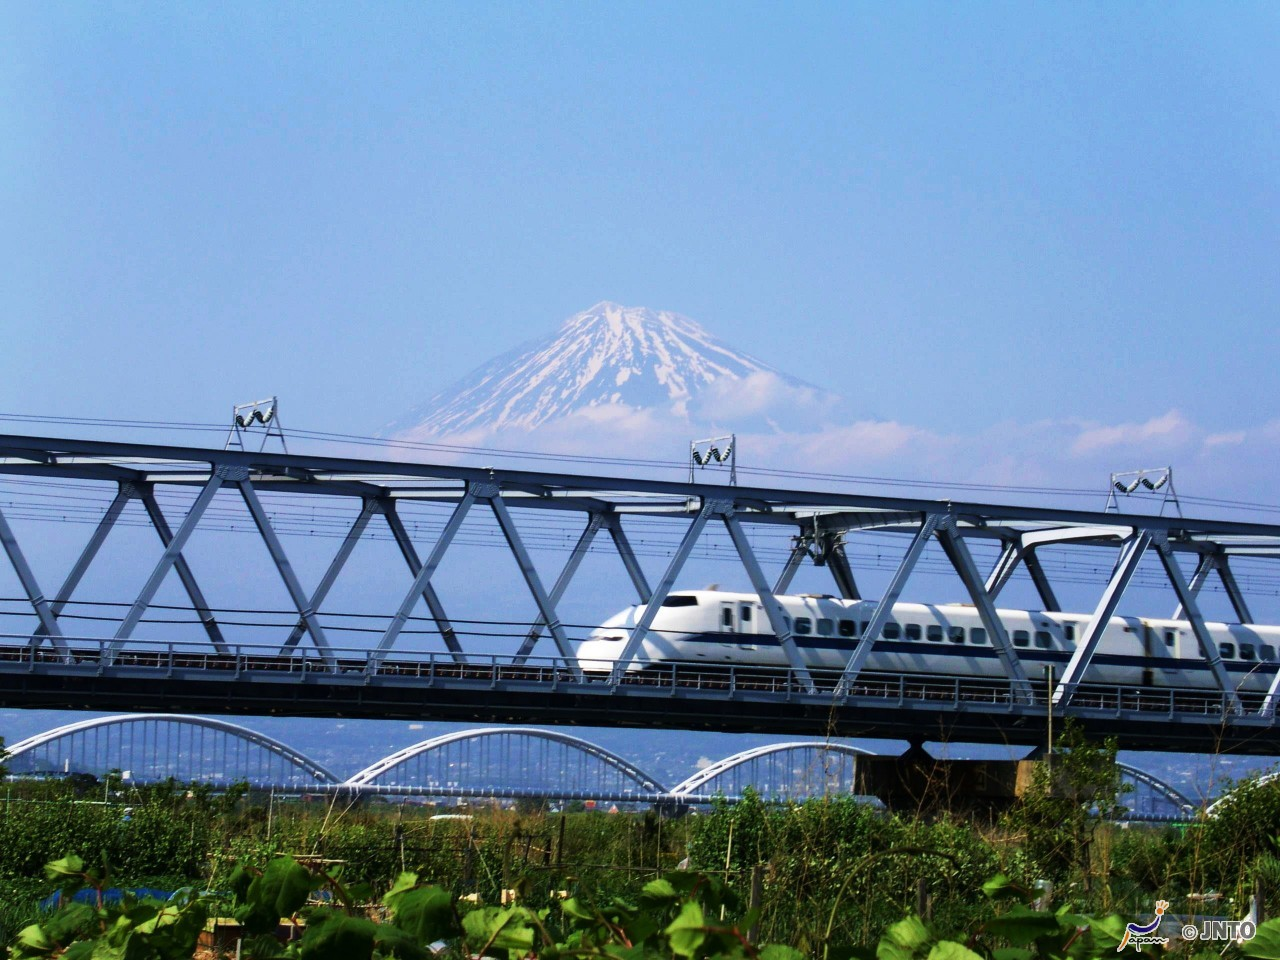 Mishima via (Tokaido shinkansen bullet train)